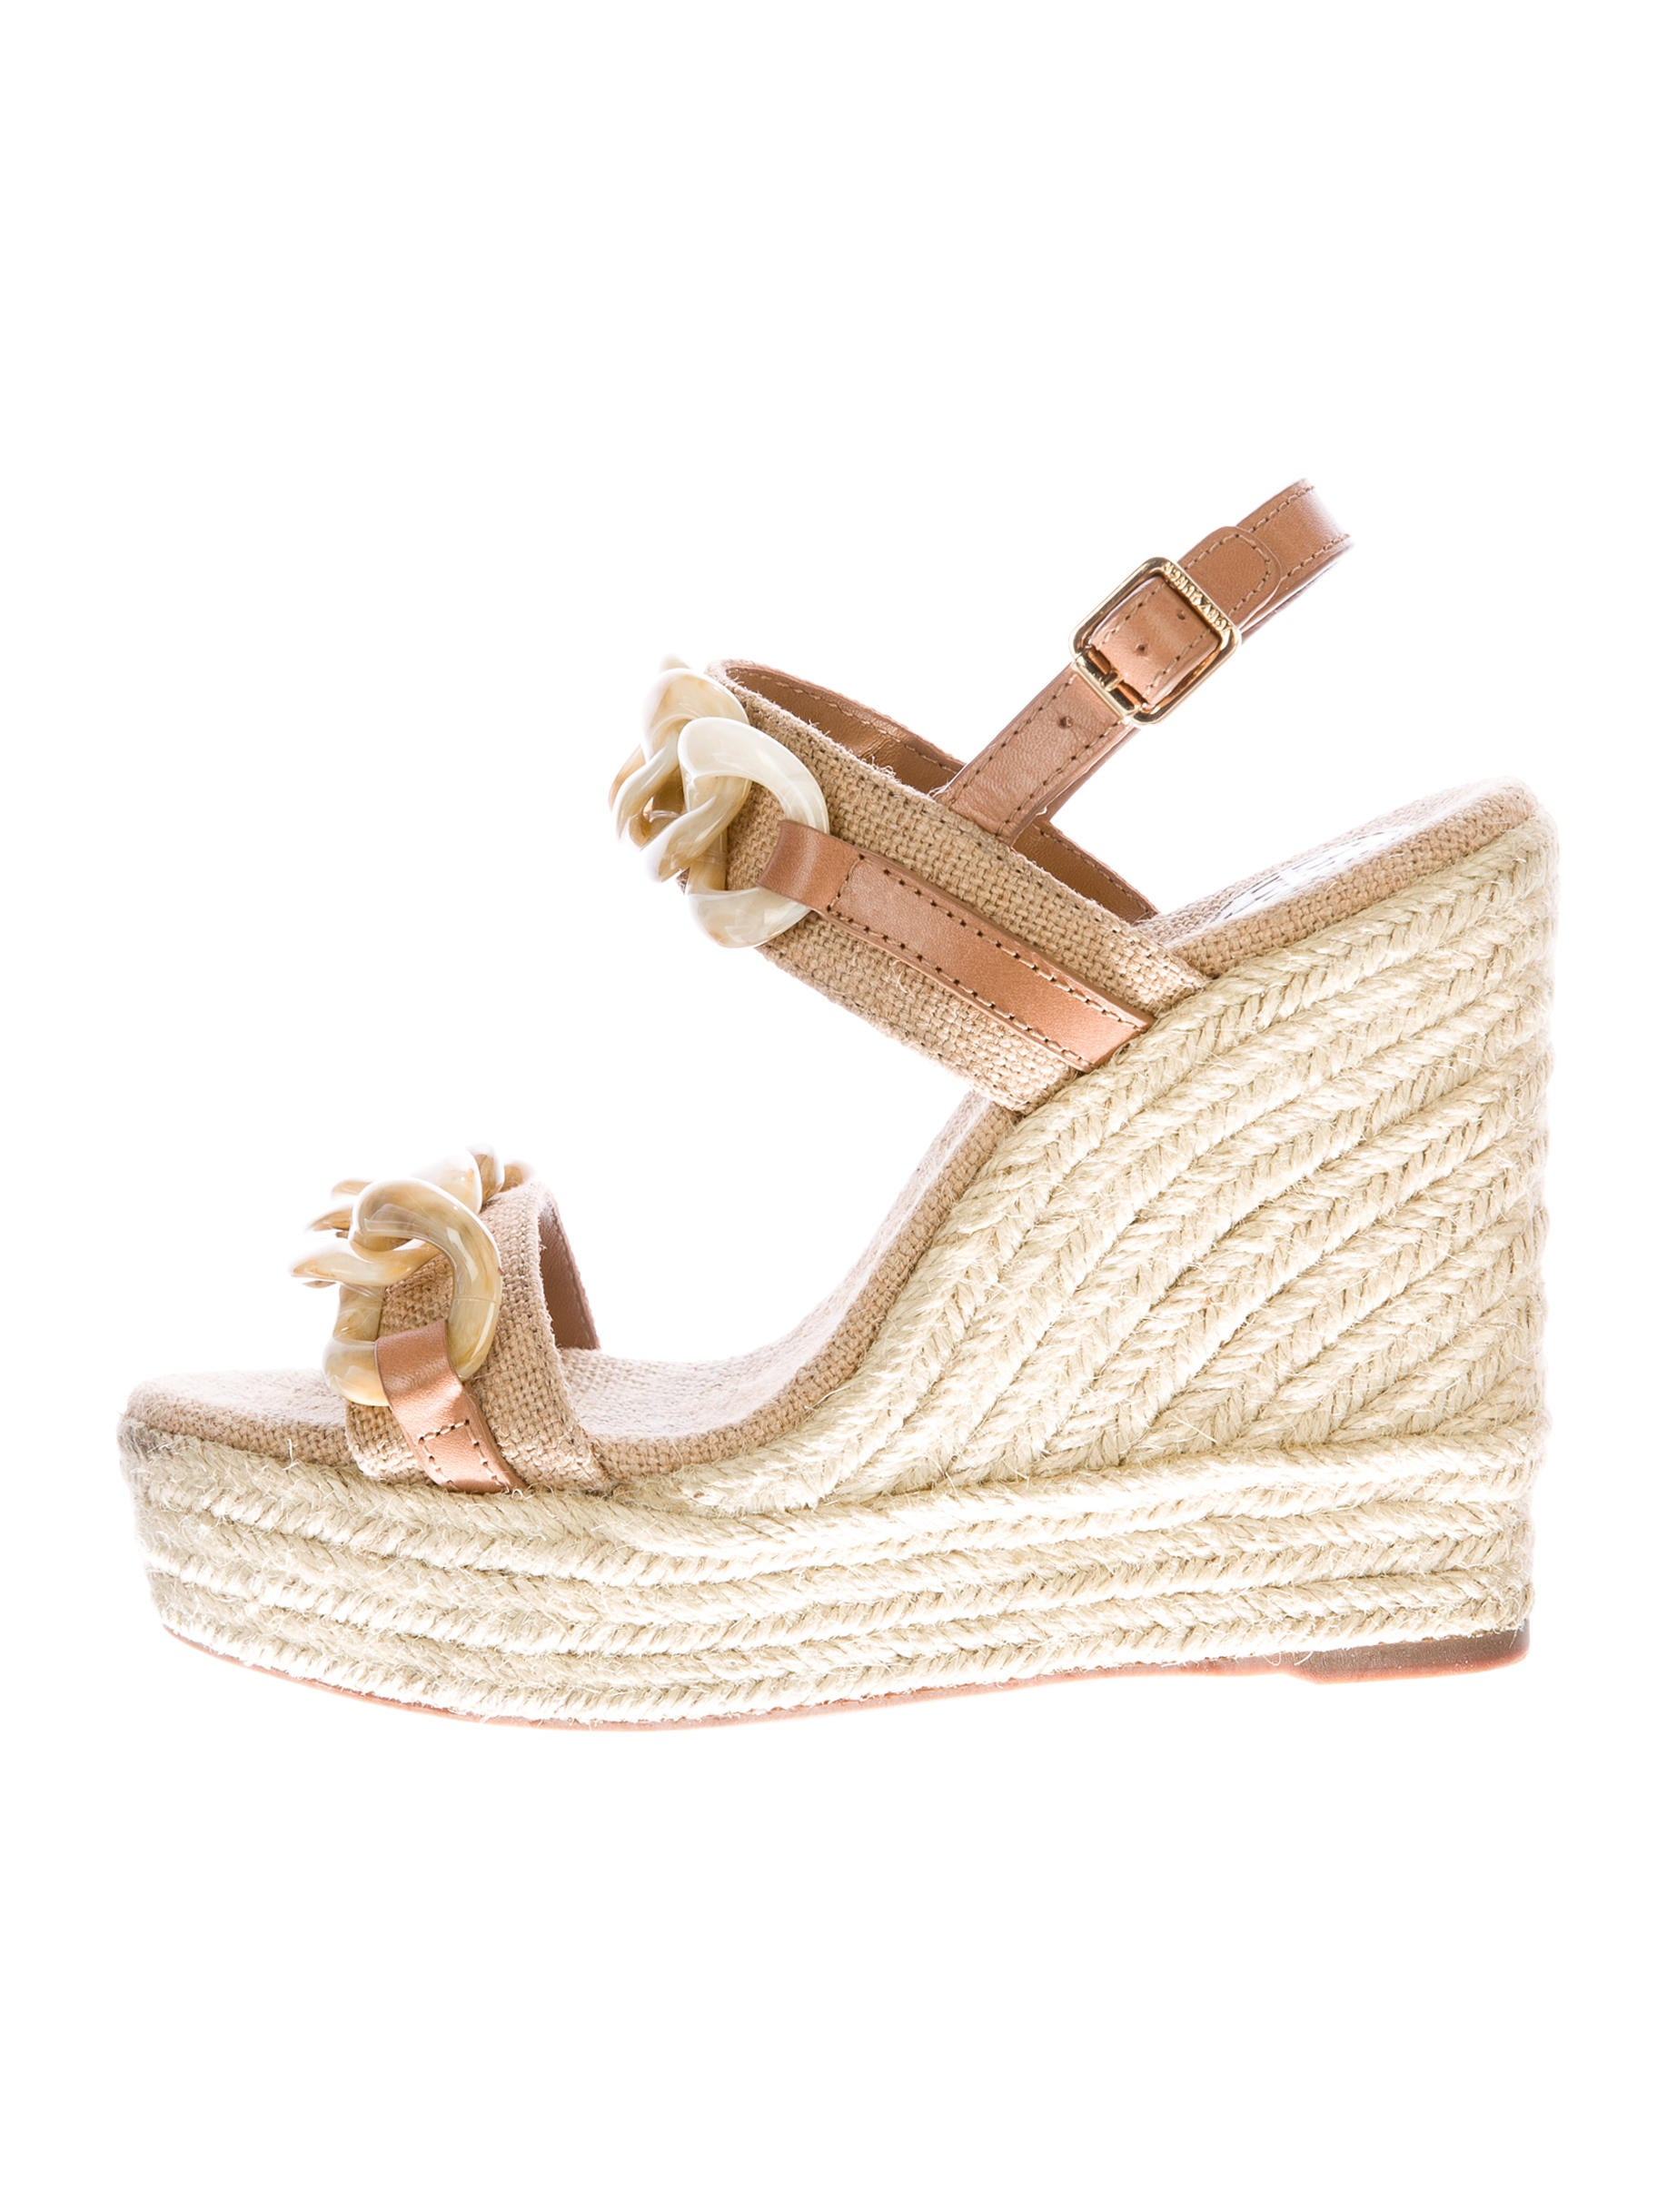 e5d64bbb56cbc Tory Burch Alta Espadrille Wedges - Shoes - WTO89905